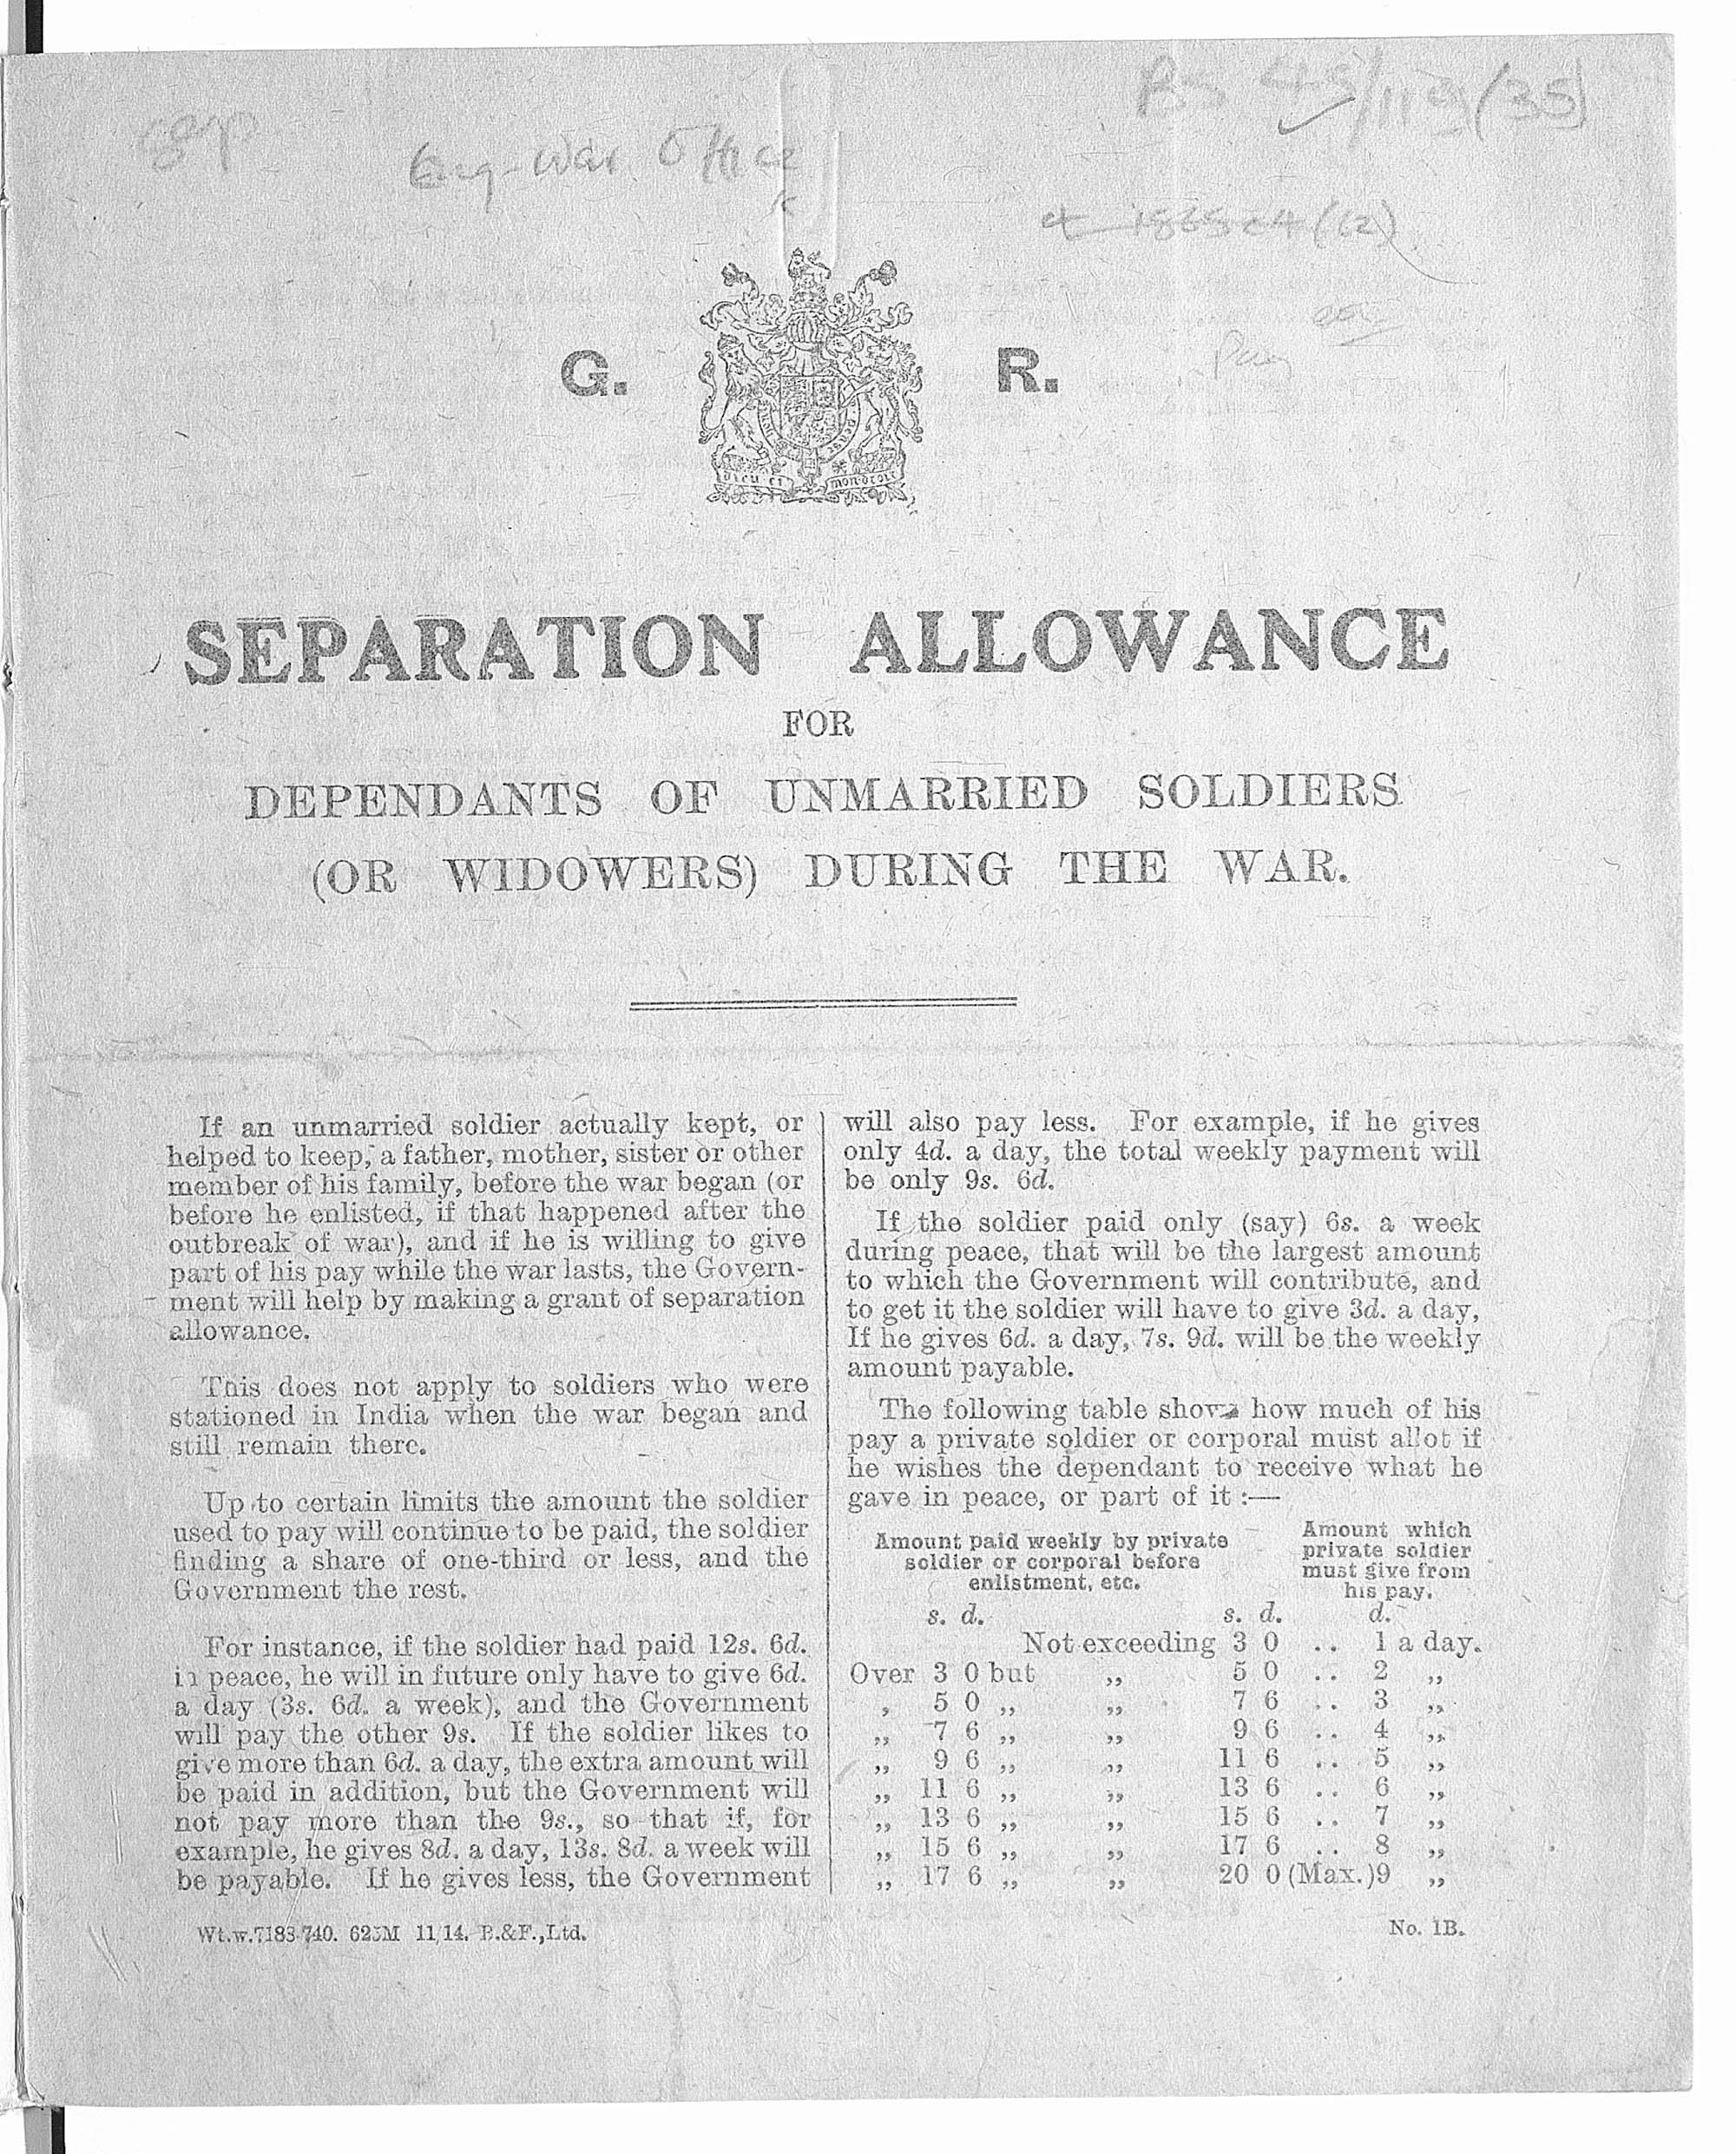 image of a document on separation allowance